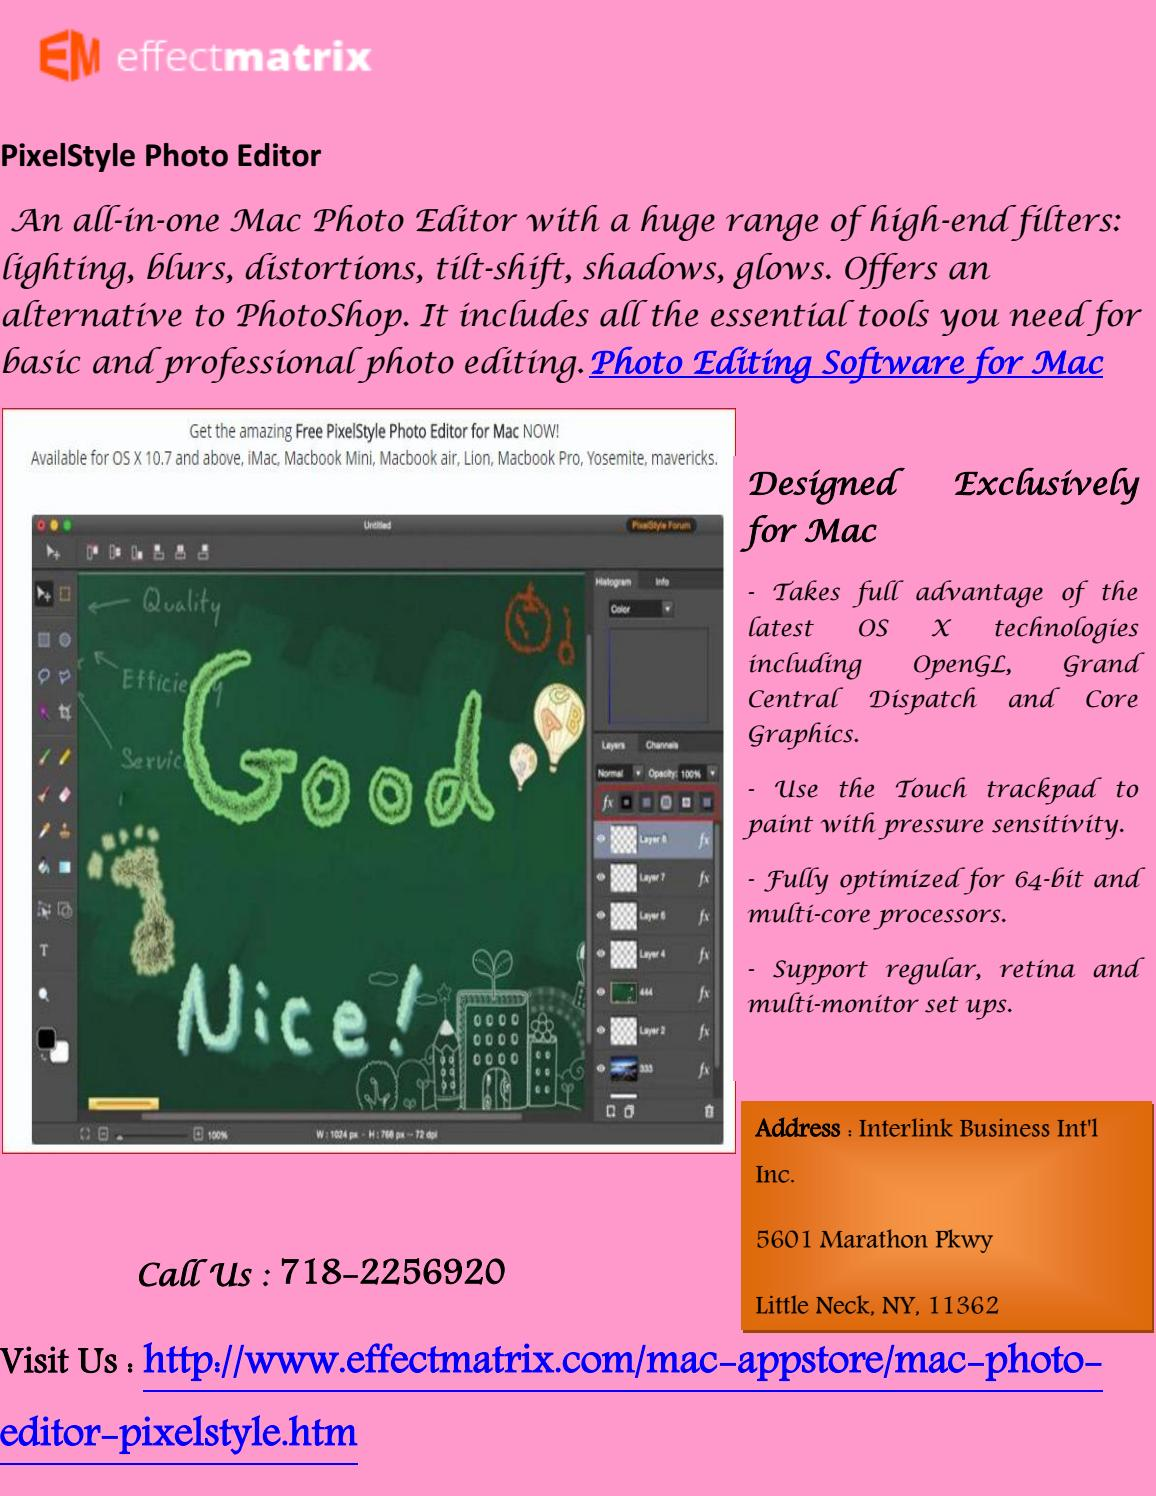 Photo editing software for mac by leey kate - issuu